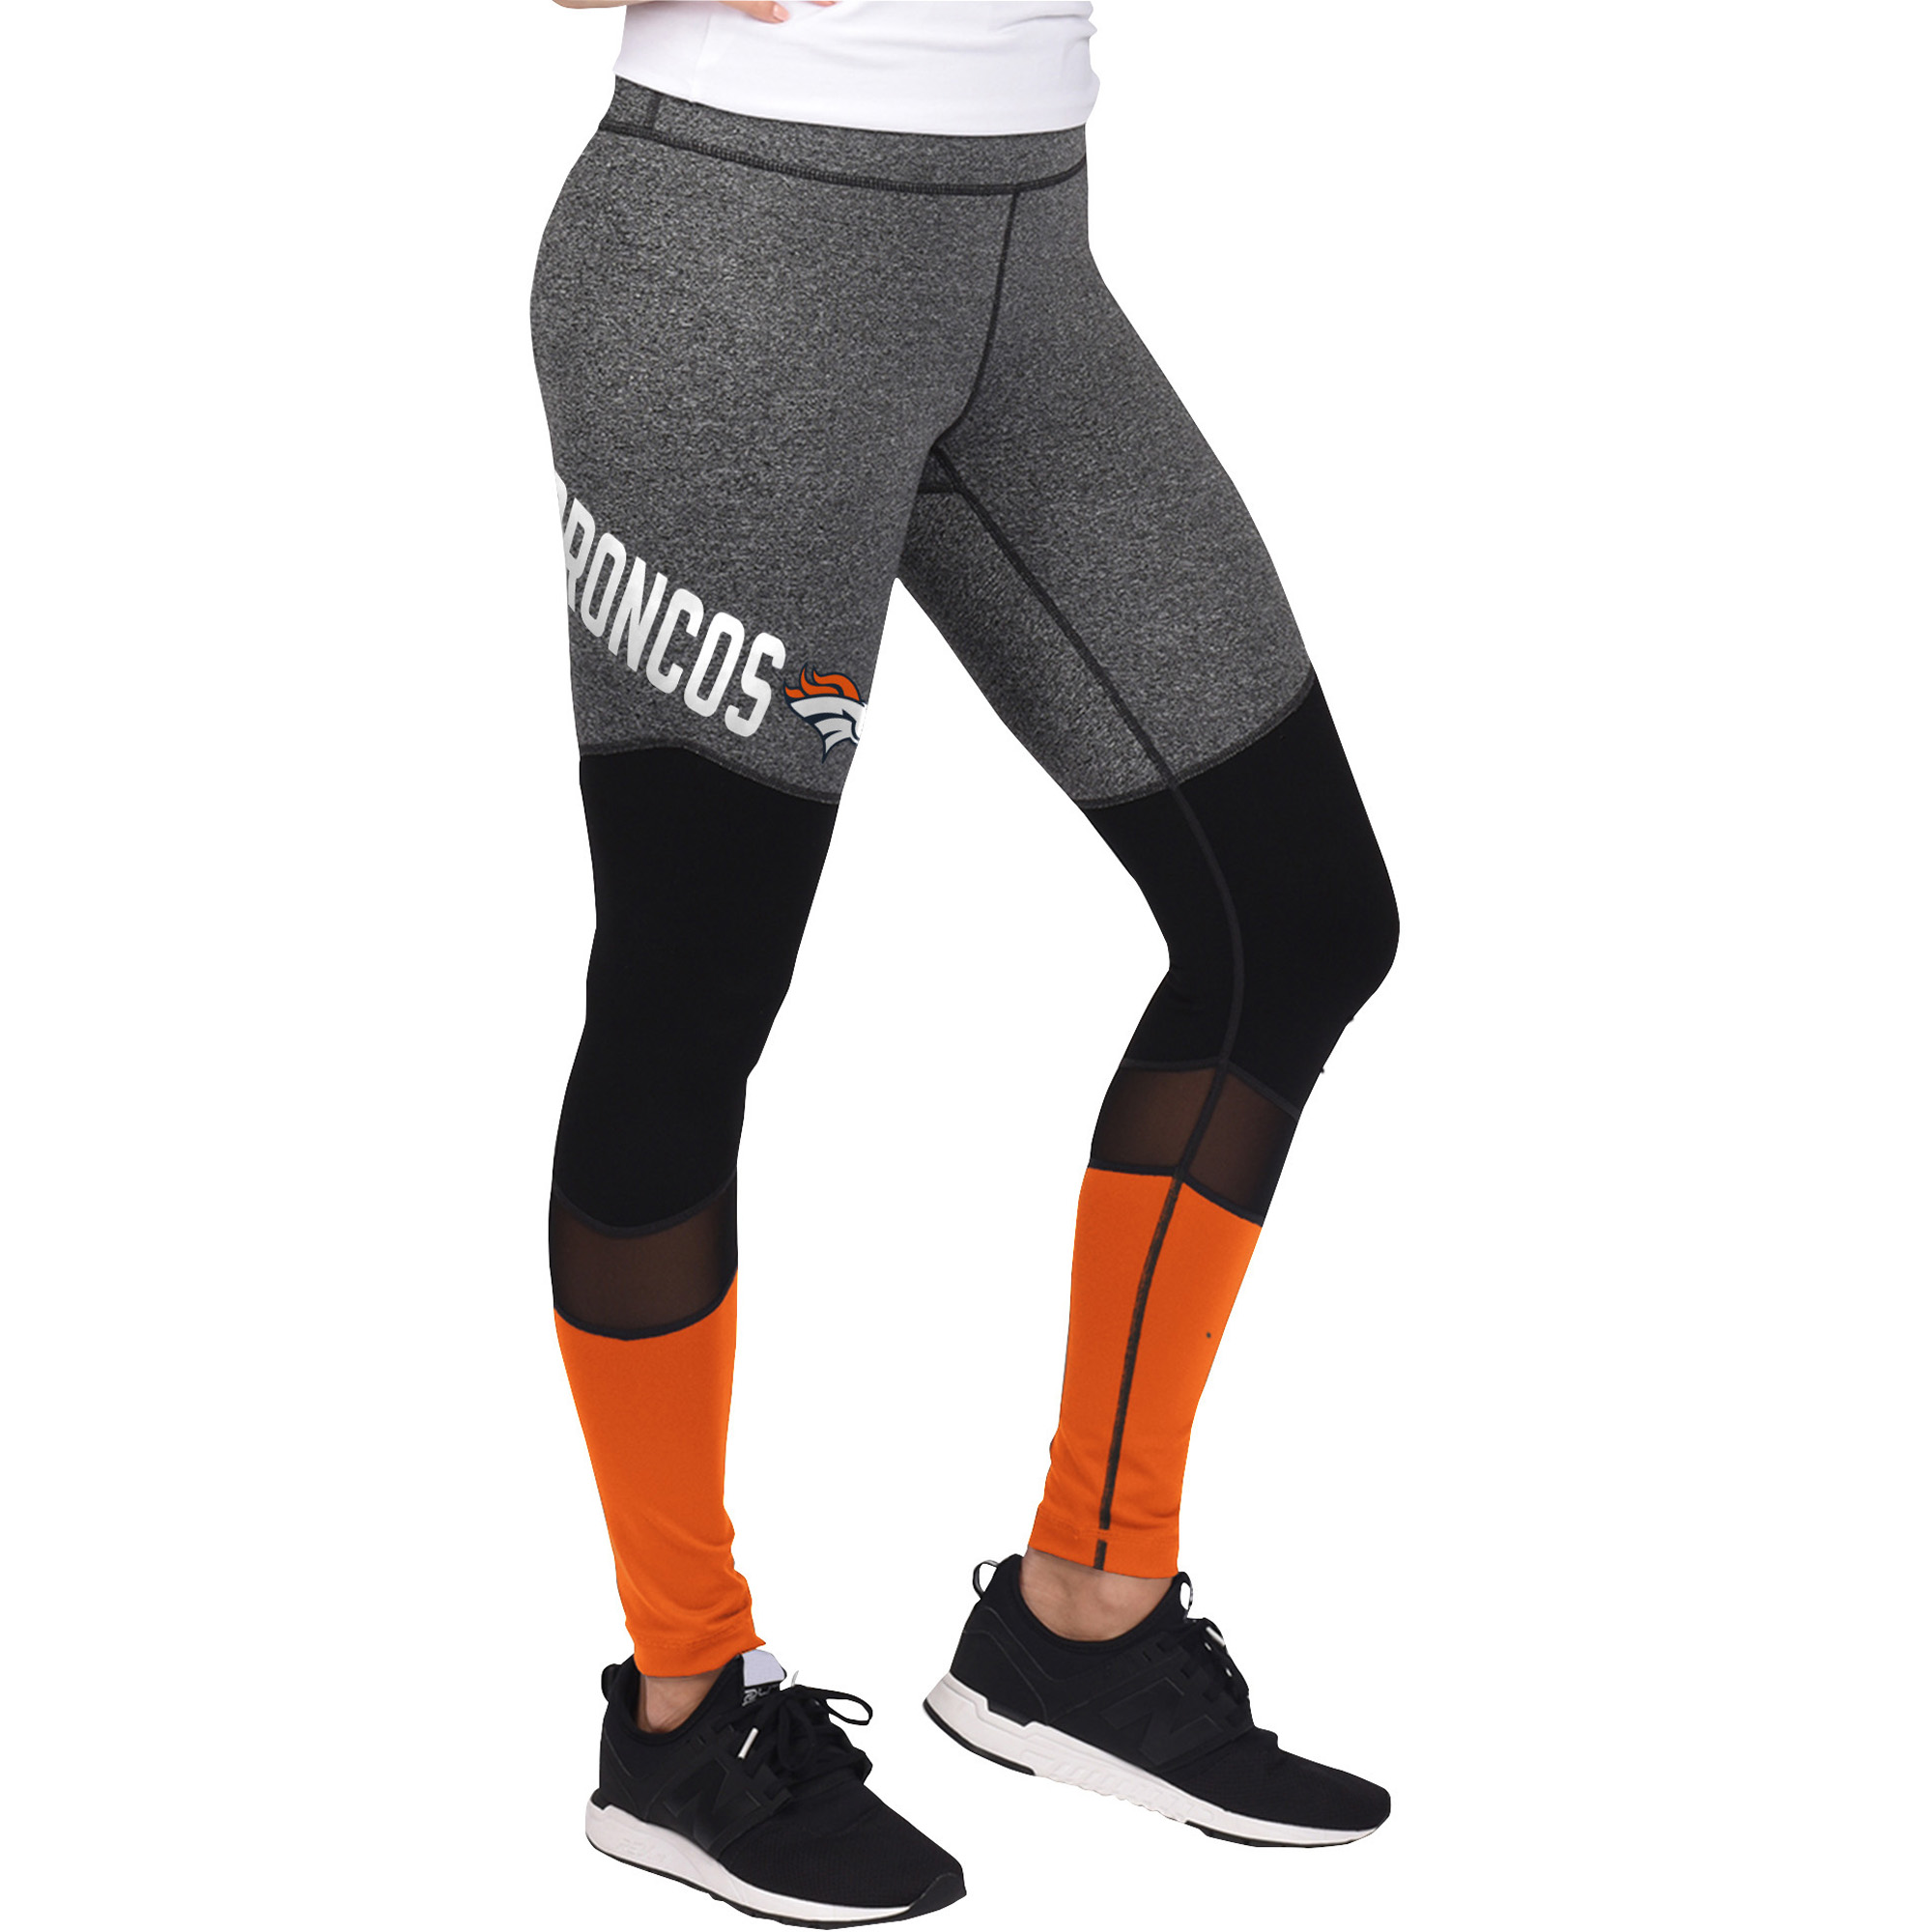 Denver Broncos G-III 4Her by Carl Banks Women's High Stepping Leggings - Gray/Black